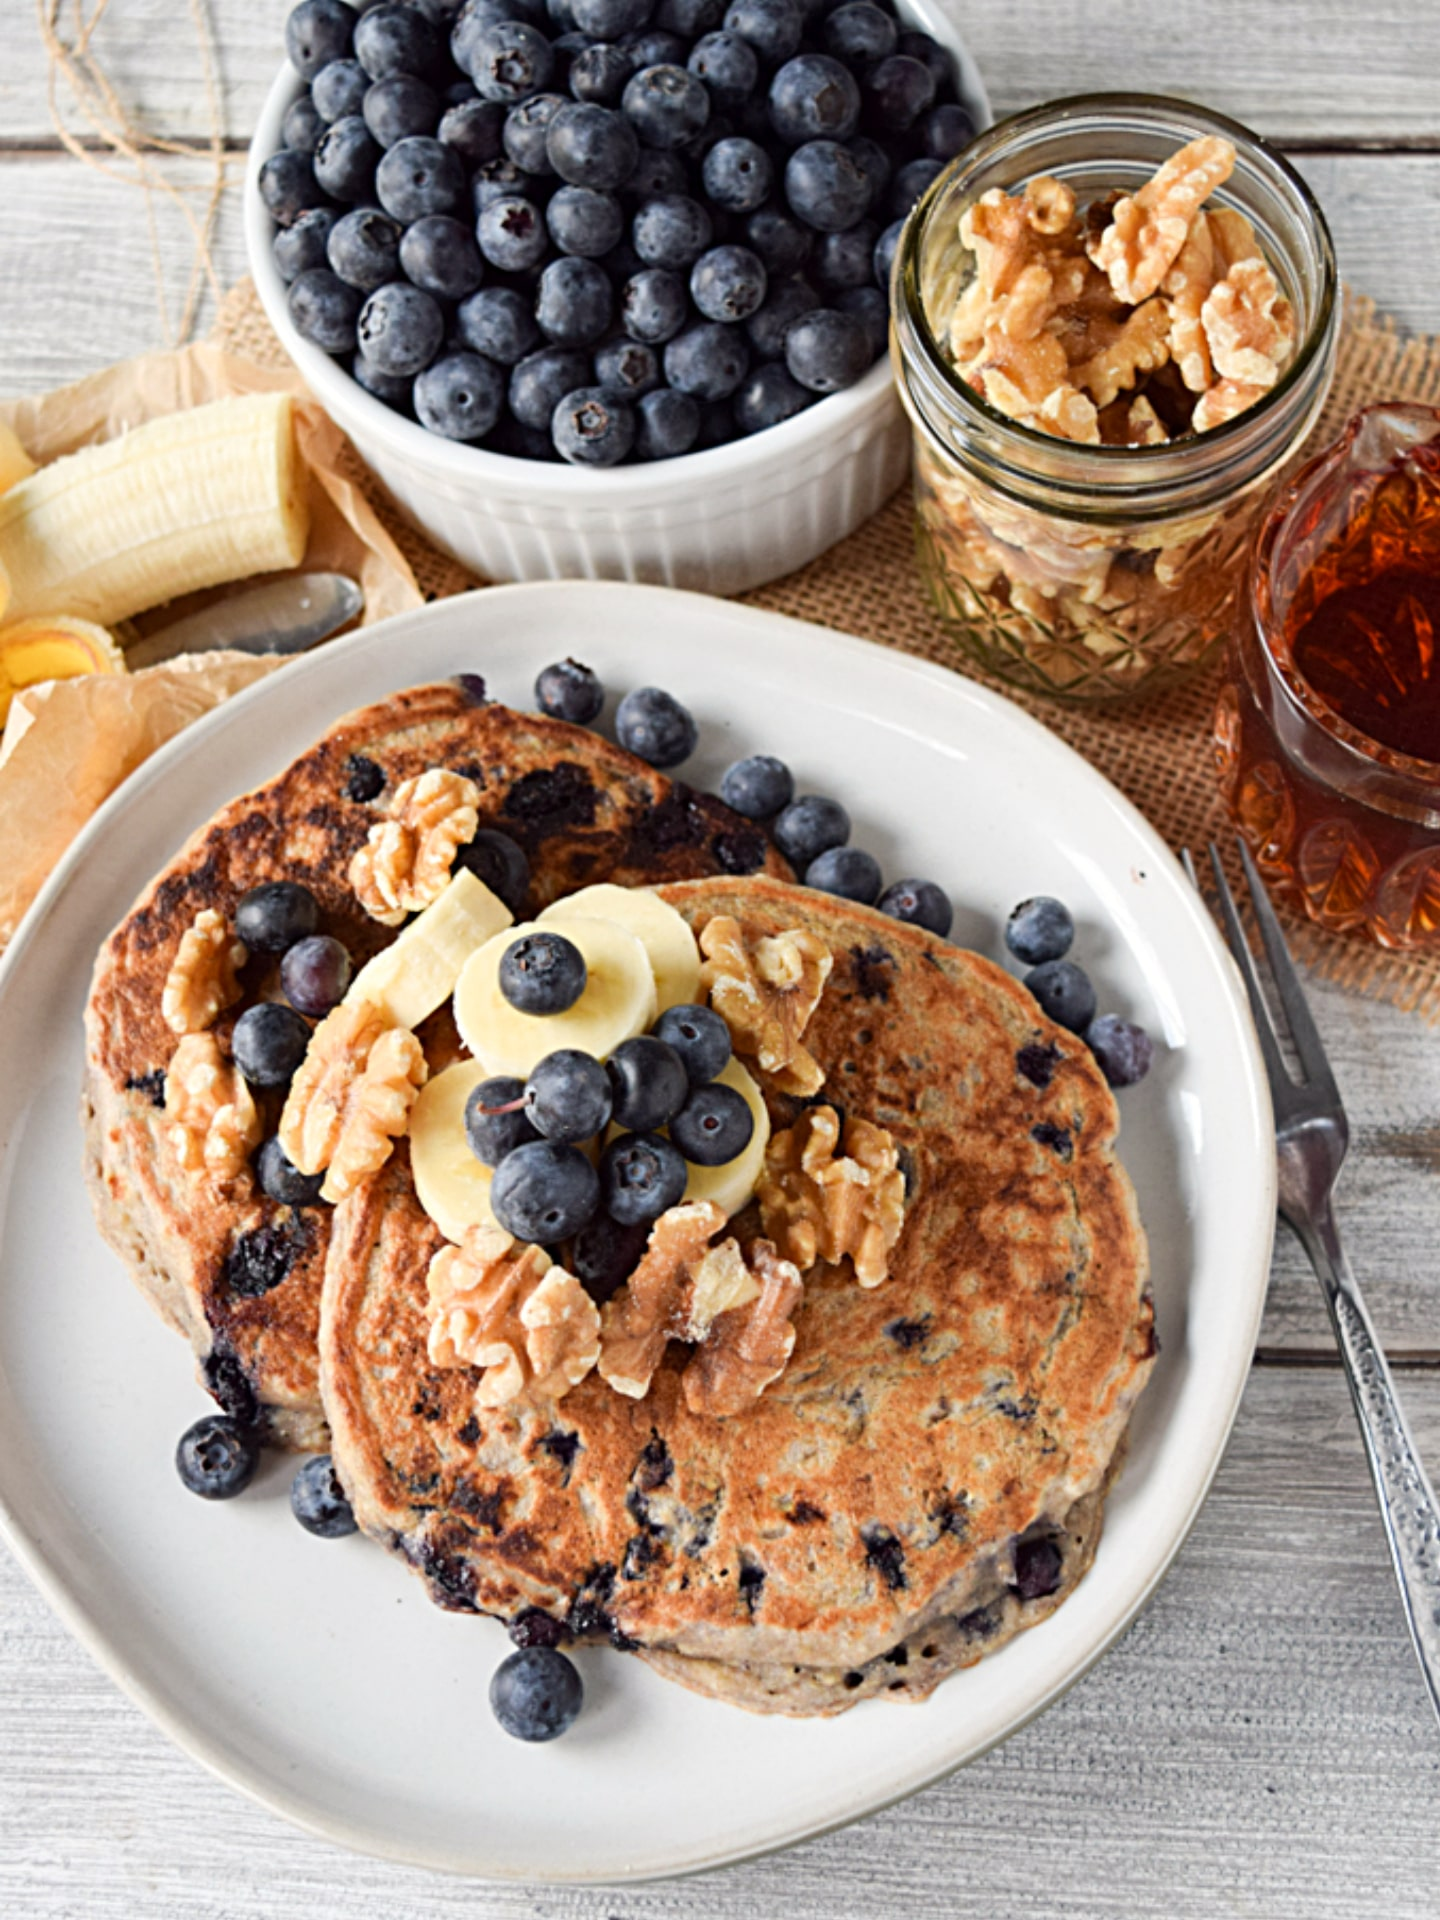 vegan blueberry pancakes on plate with bananas and walnuts.